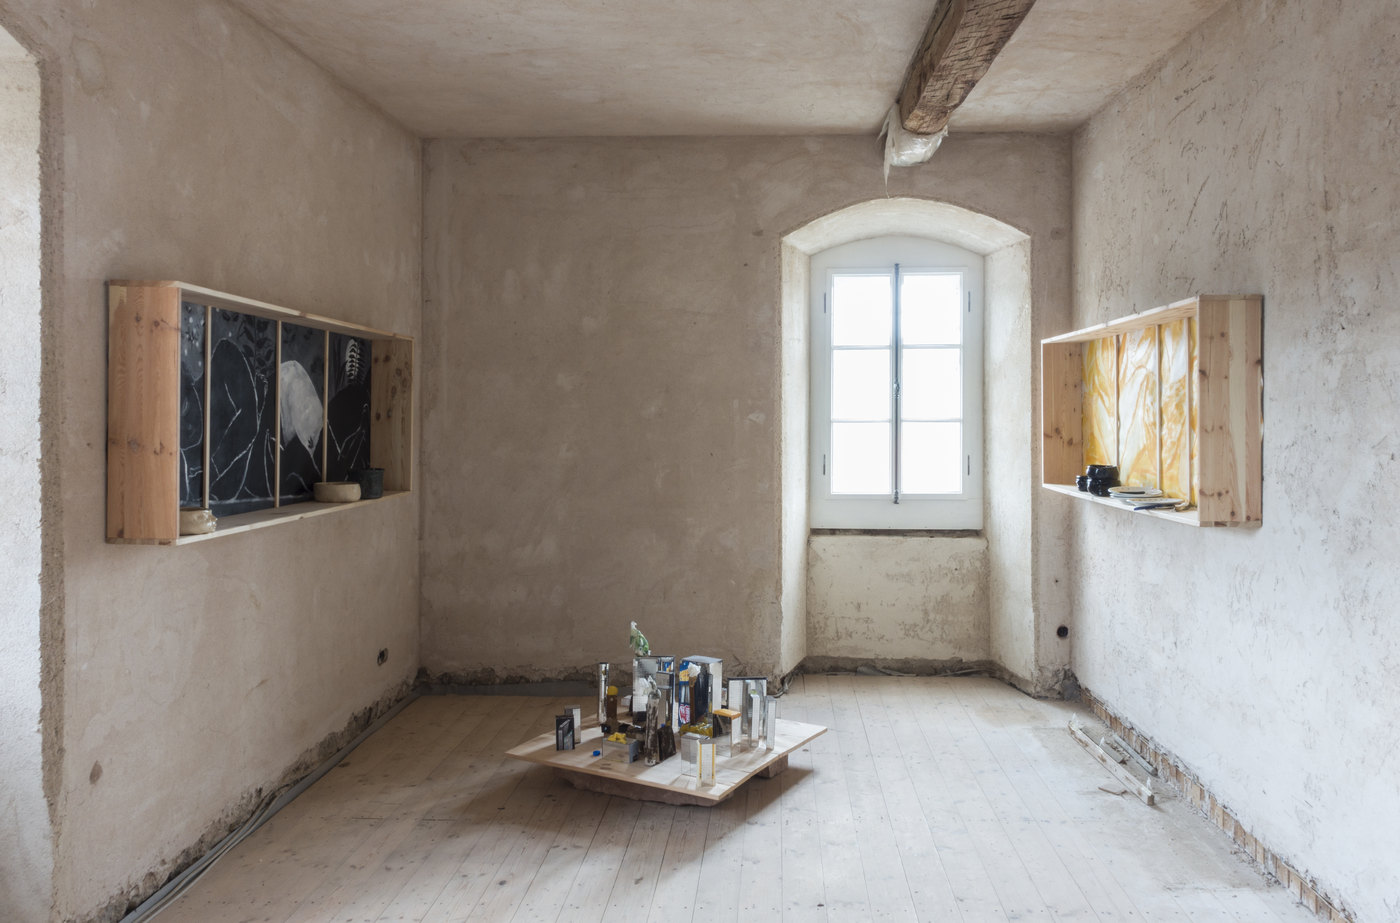 Kunstverein Wiesen_KuWi_Forward to History_Jan Kiefer & Robert Brambora_2016_RB_Room2a